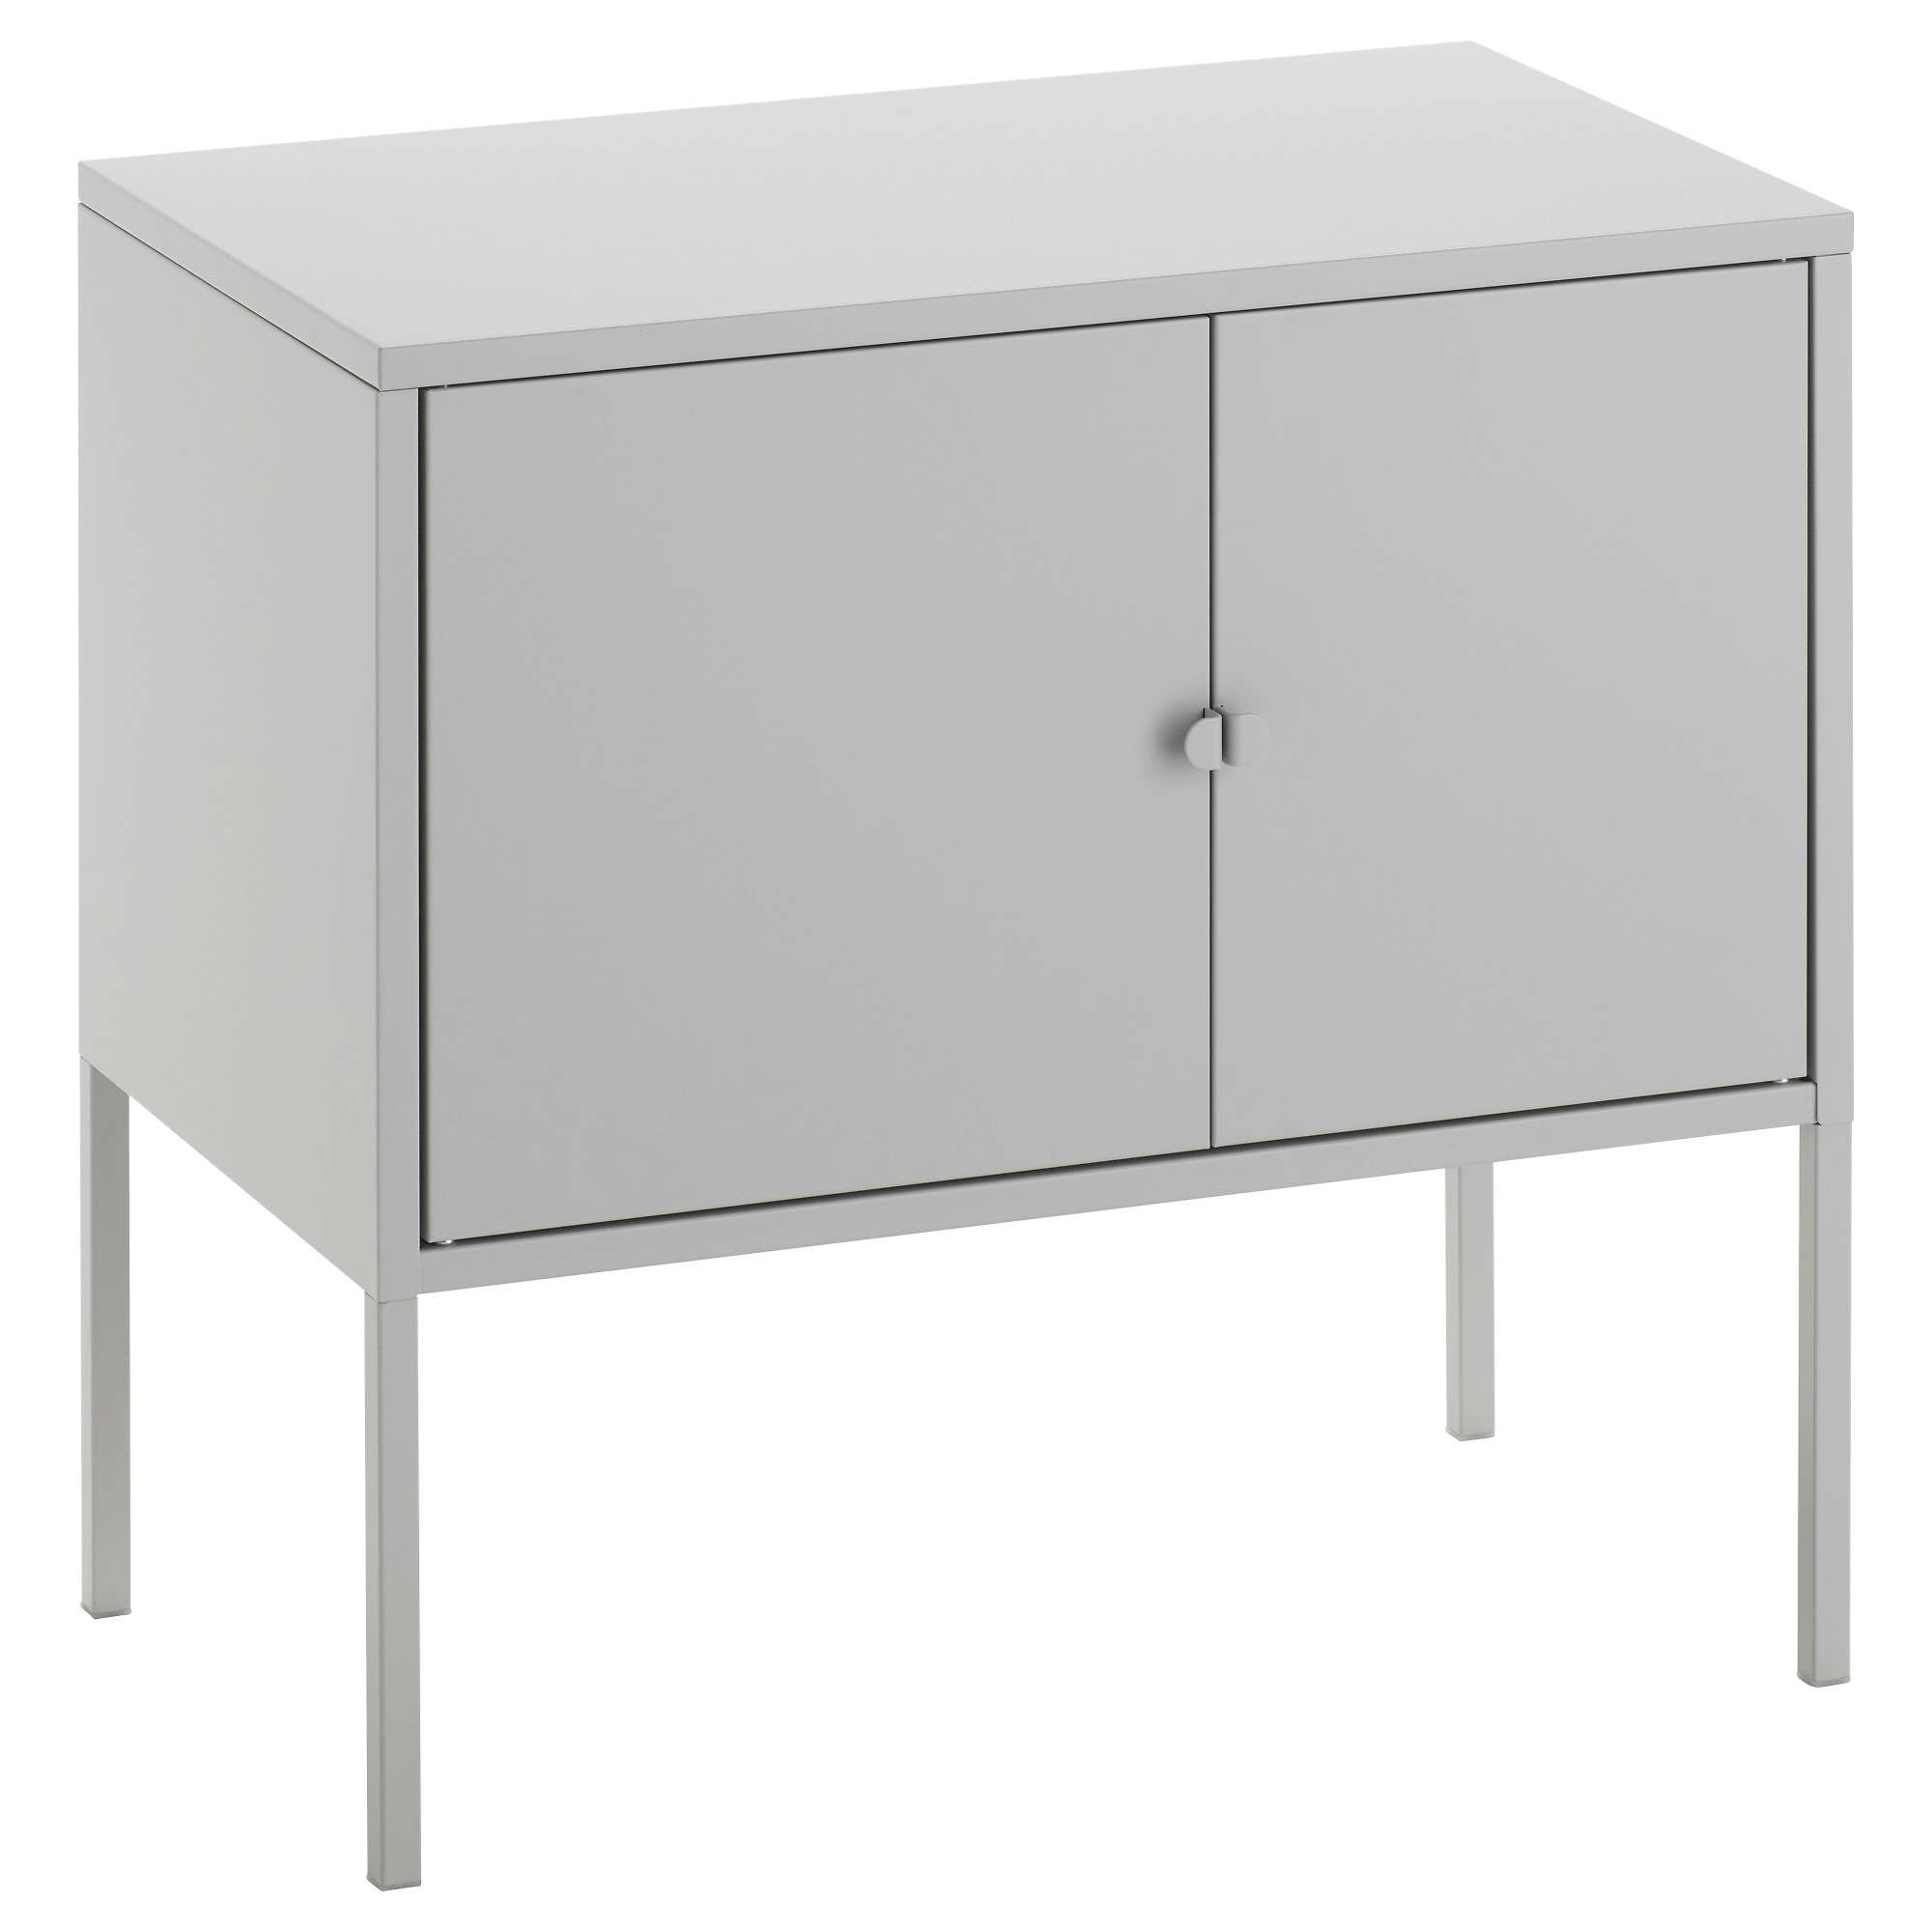 Storage Cabinets & Storage Cupboards | Ikea In White Gloss Ikea Sideboards (View 12 of 20)